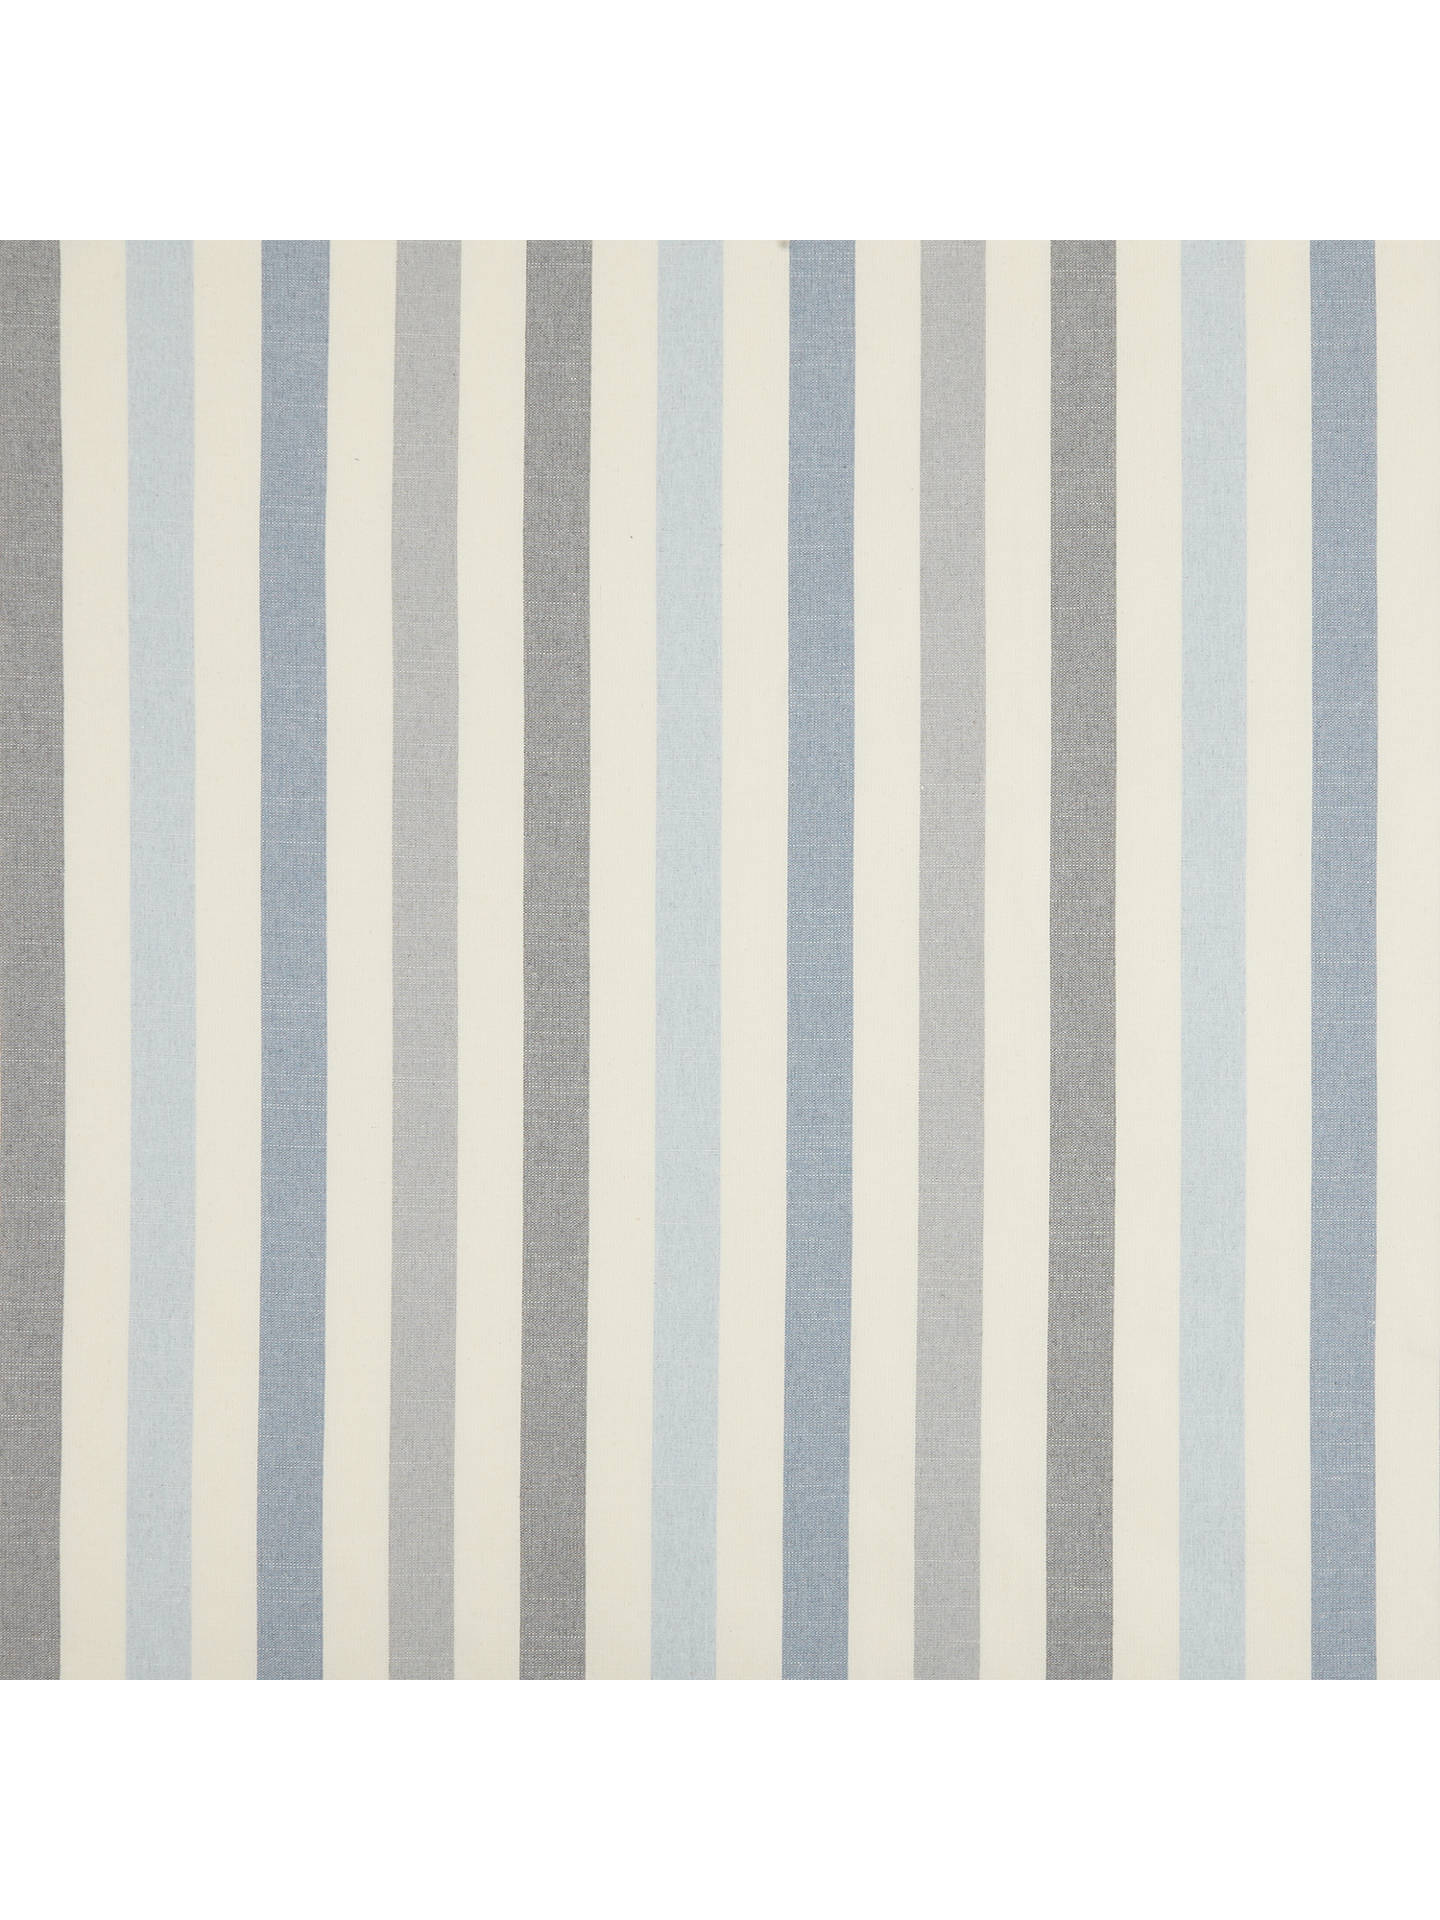 Buy John Lewis & Partners Penzance Stripe Furnishing Fabric, Blue Online at johnlewis.com